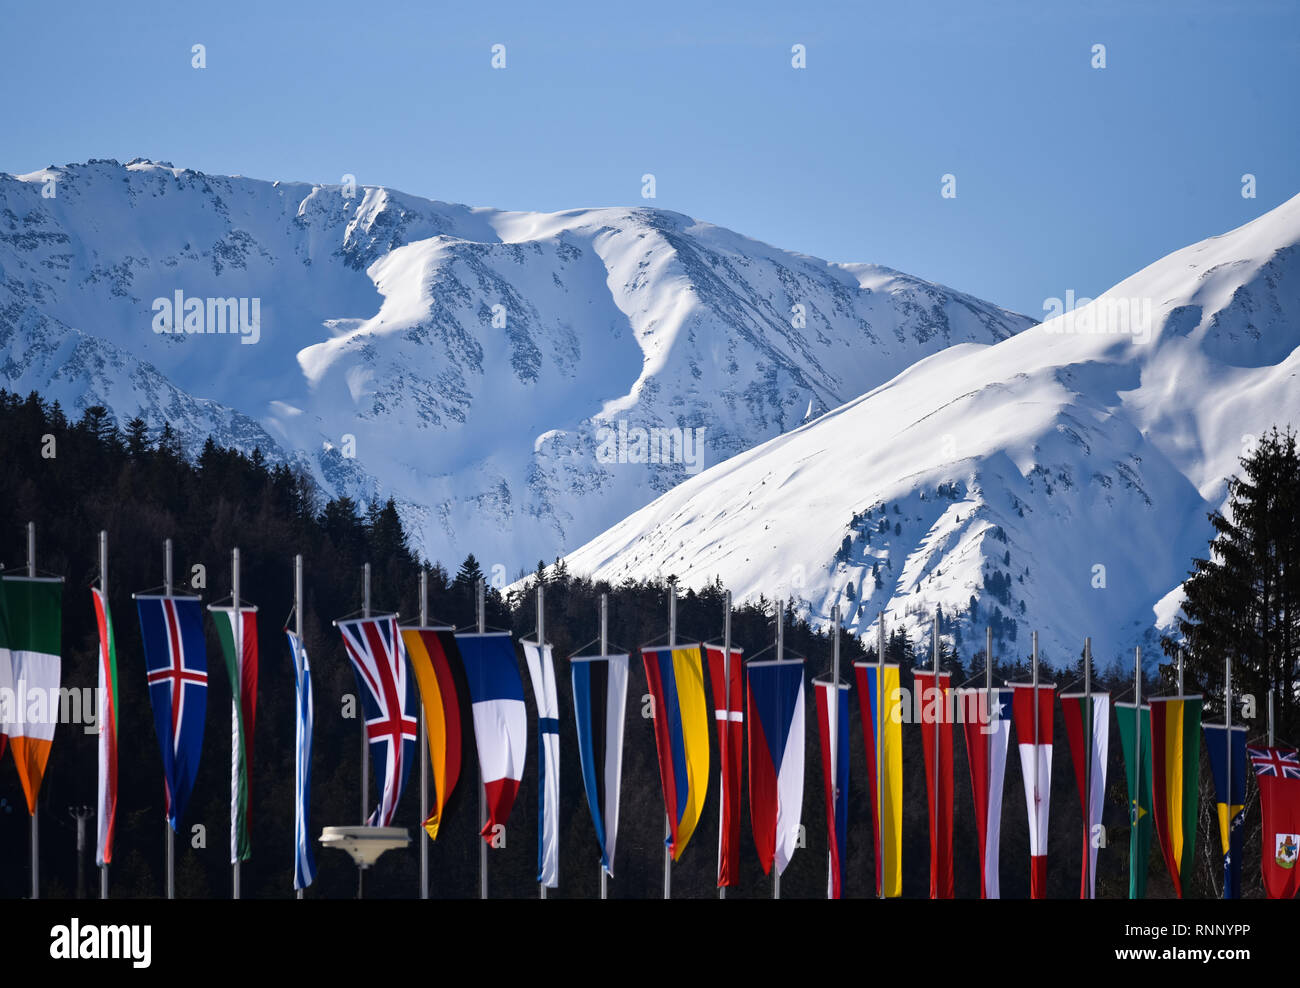 Seefeld, Austria. 19th Feb, 2019. Flags at FIS World nordic Ski Championships, Seefeld, Austria. Credit: John Lazenby/Alamy Live News - Stock Image